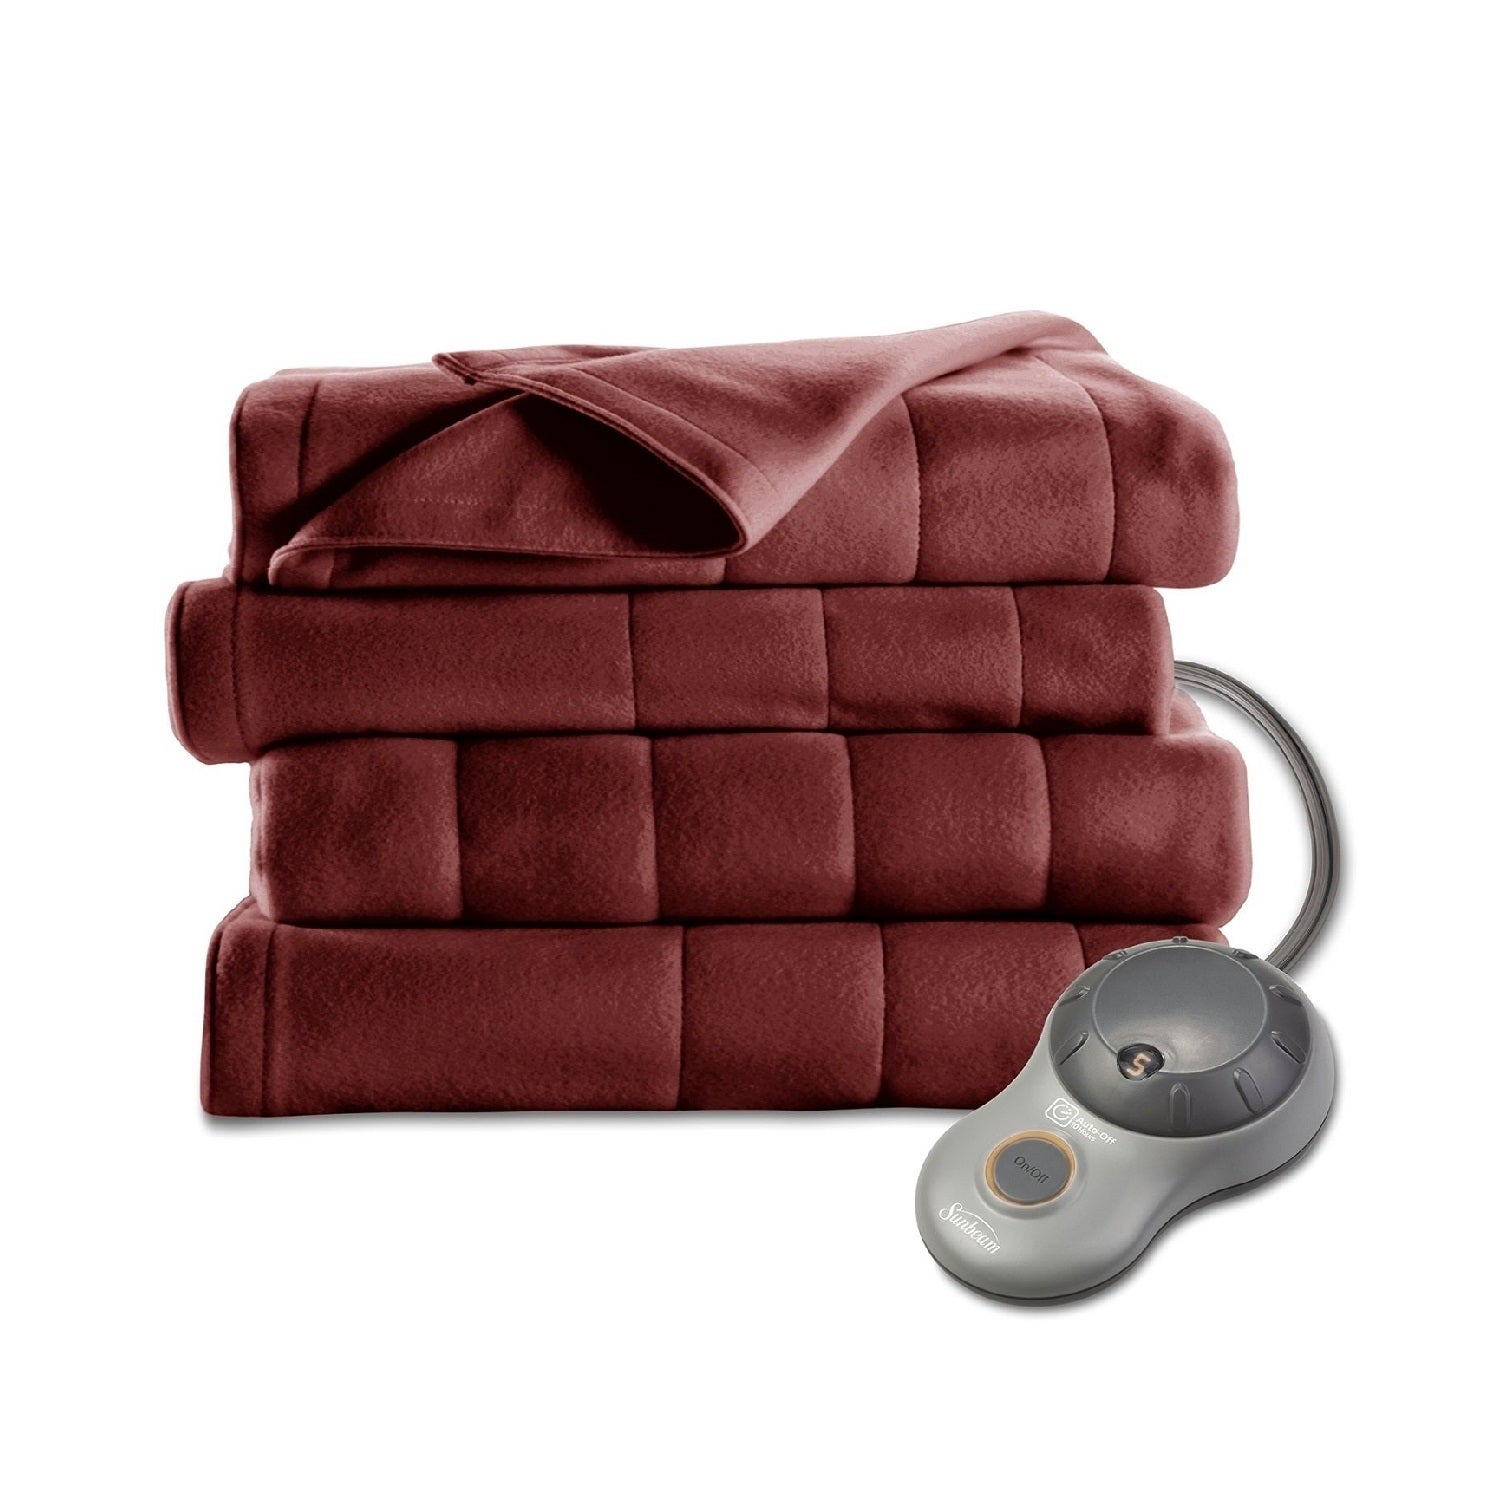 Sunbeam Quilted Electric Fleece Heated King Size Blanket